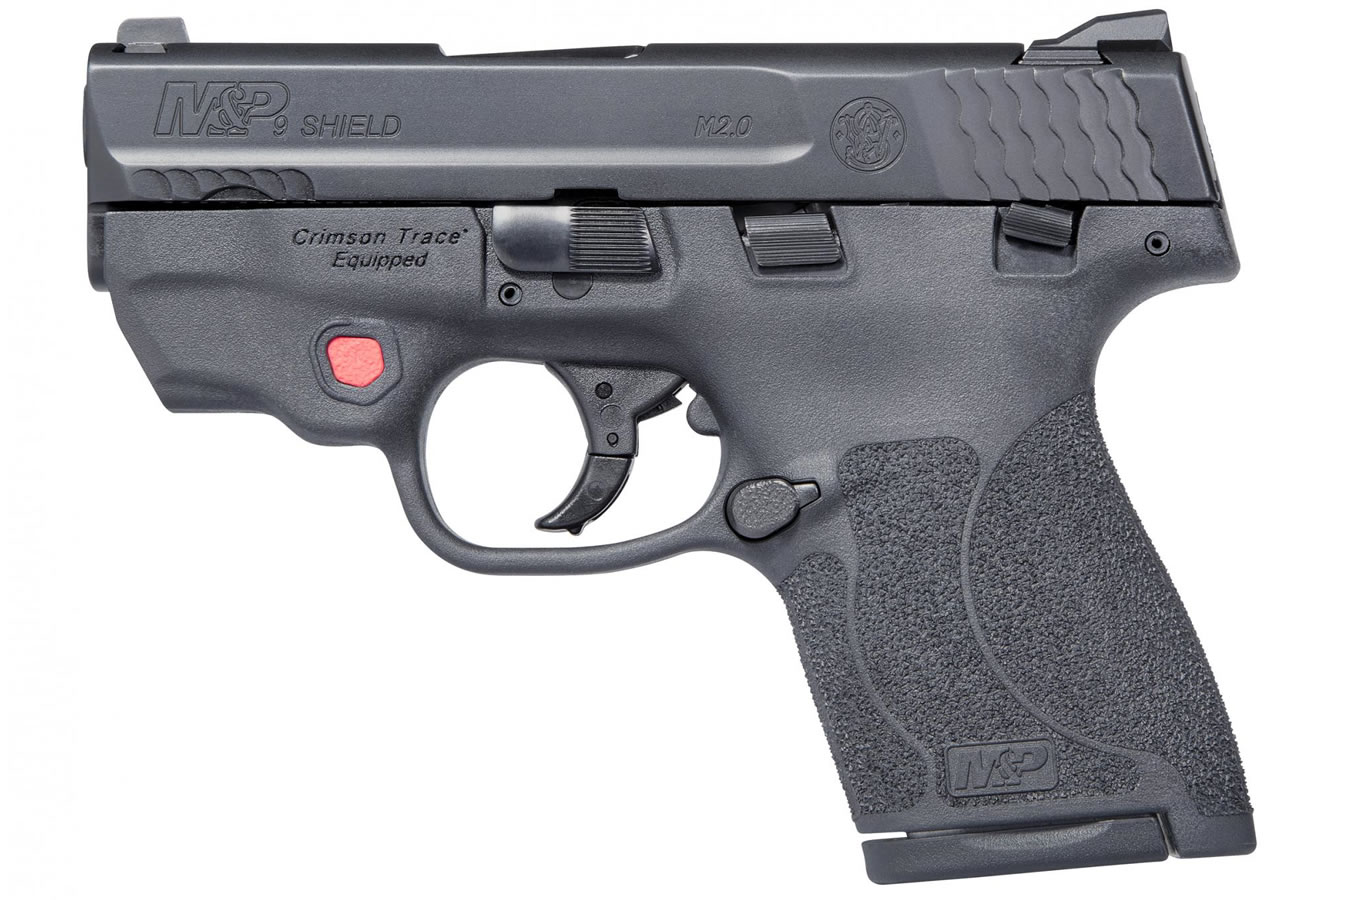 No. 17 Best Selling: SMITH AND WESSON MP9 SHIELD M2.0 9MM W/TS CT LASER